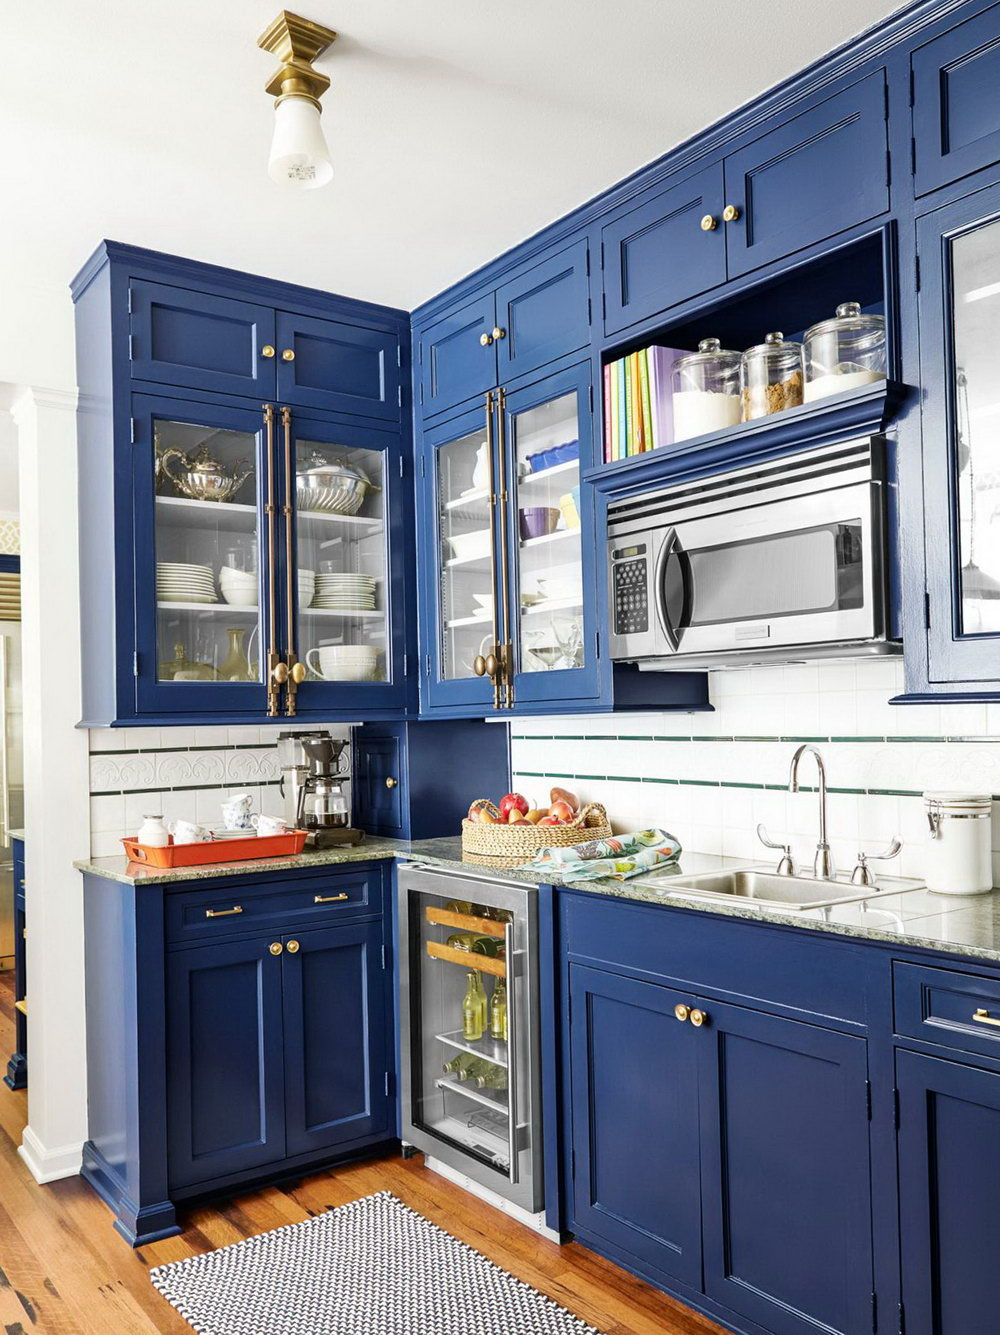 Best Way To Clean Kitchen Cabinets Before Painting